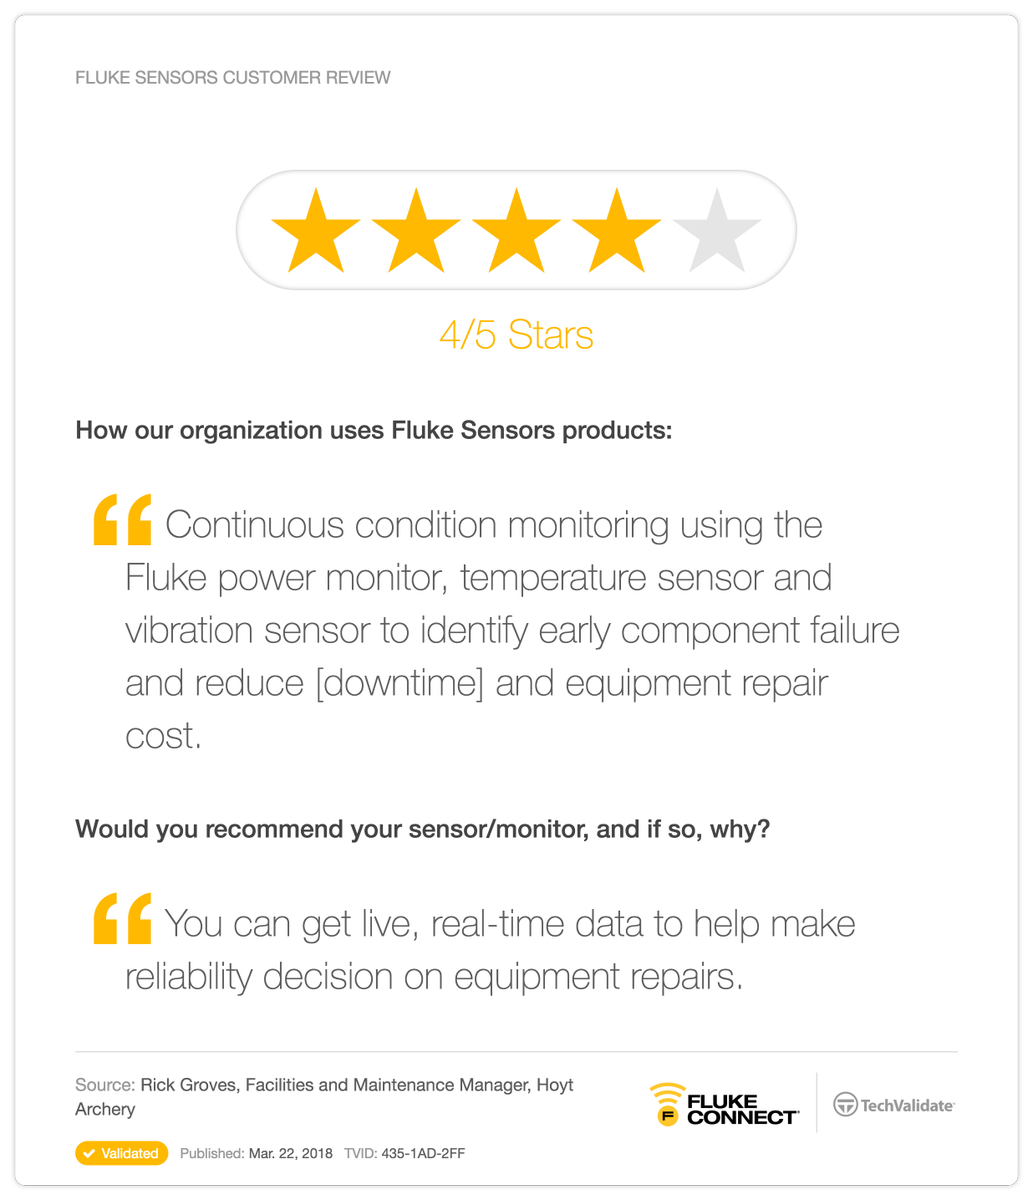 Accelix On Twitter Find Out What Flukecorp Customers Think Of Our Remote Power Manager Maintenance Reliability Assetmanagement Vibration Vibrationmonitoring Thermal Thermalimaging Powermonitoring Data Tech Technology